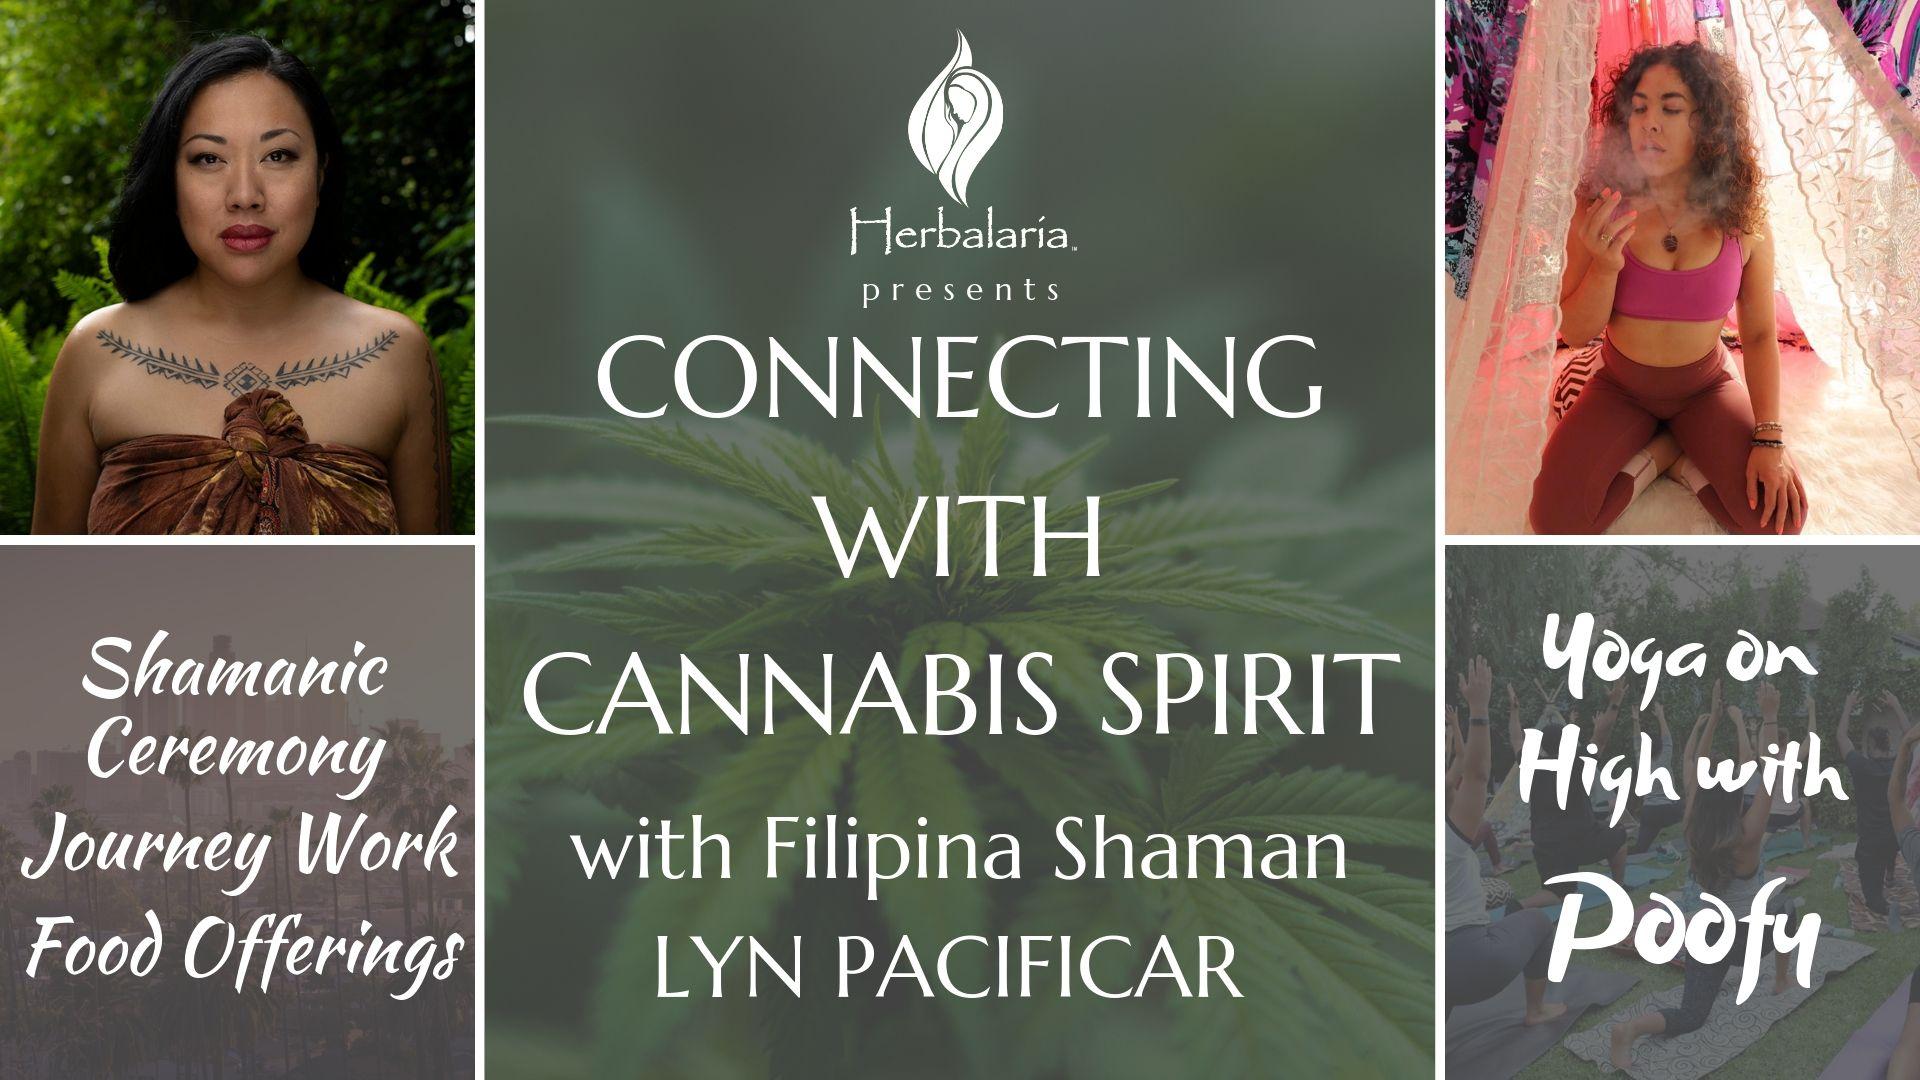 Connecting with Cannabis Spirit